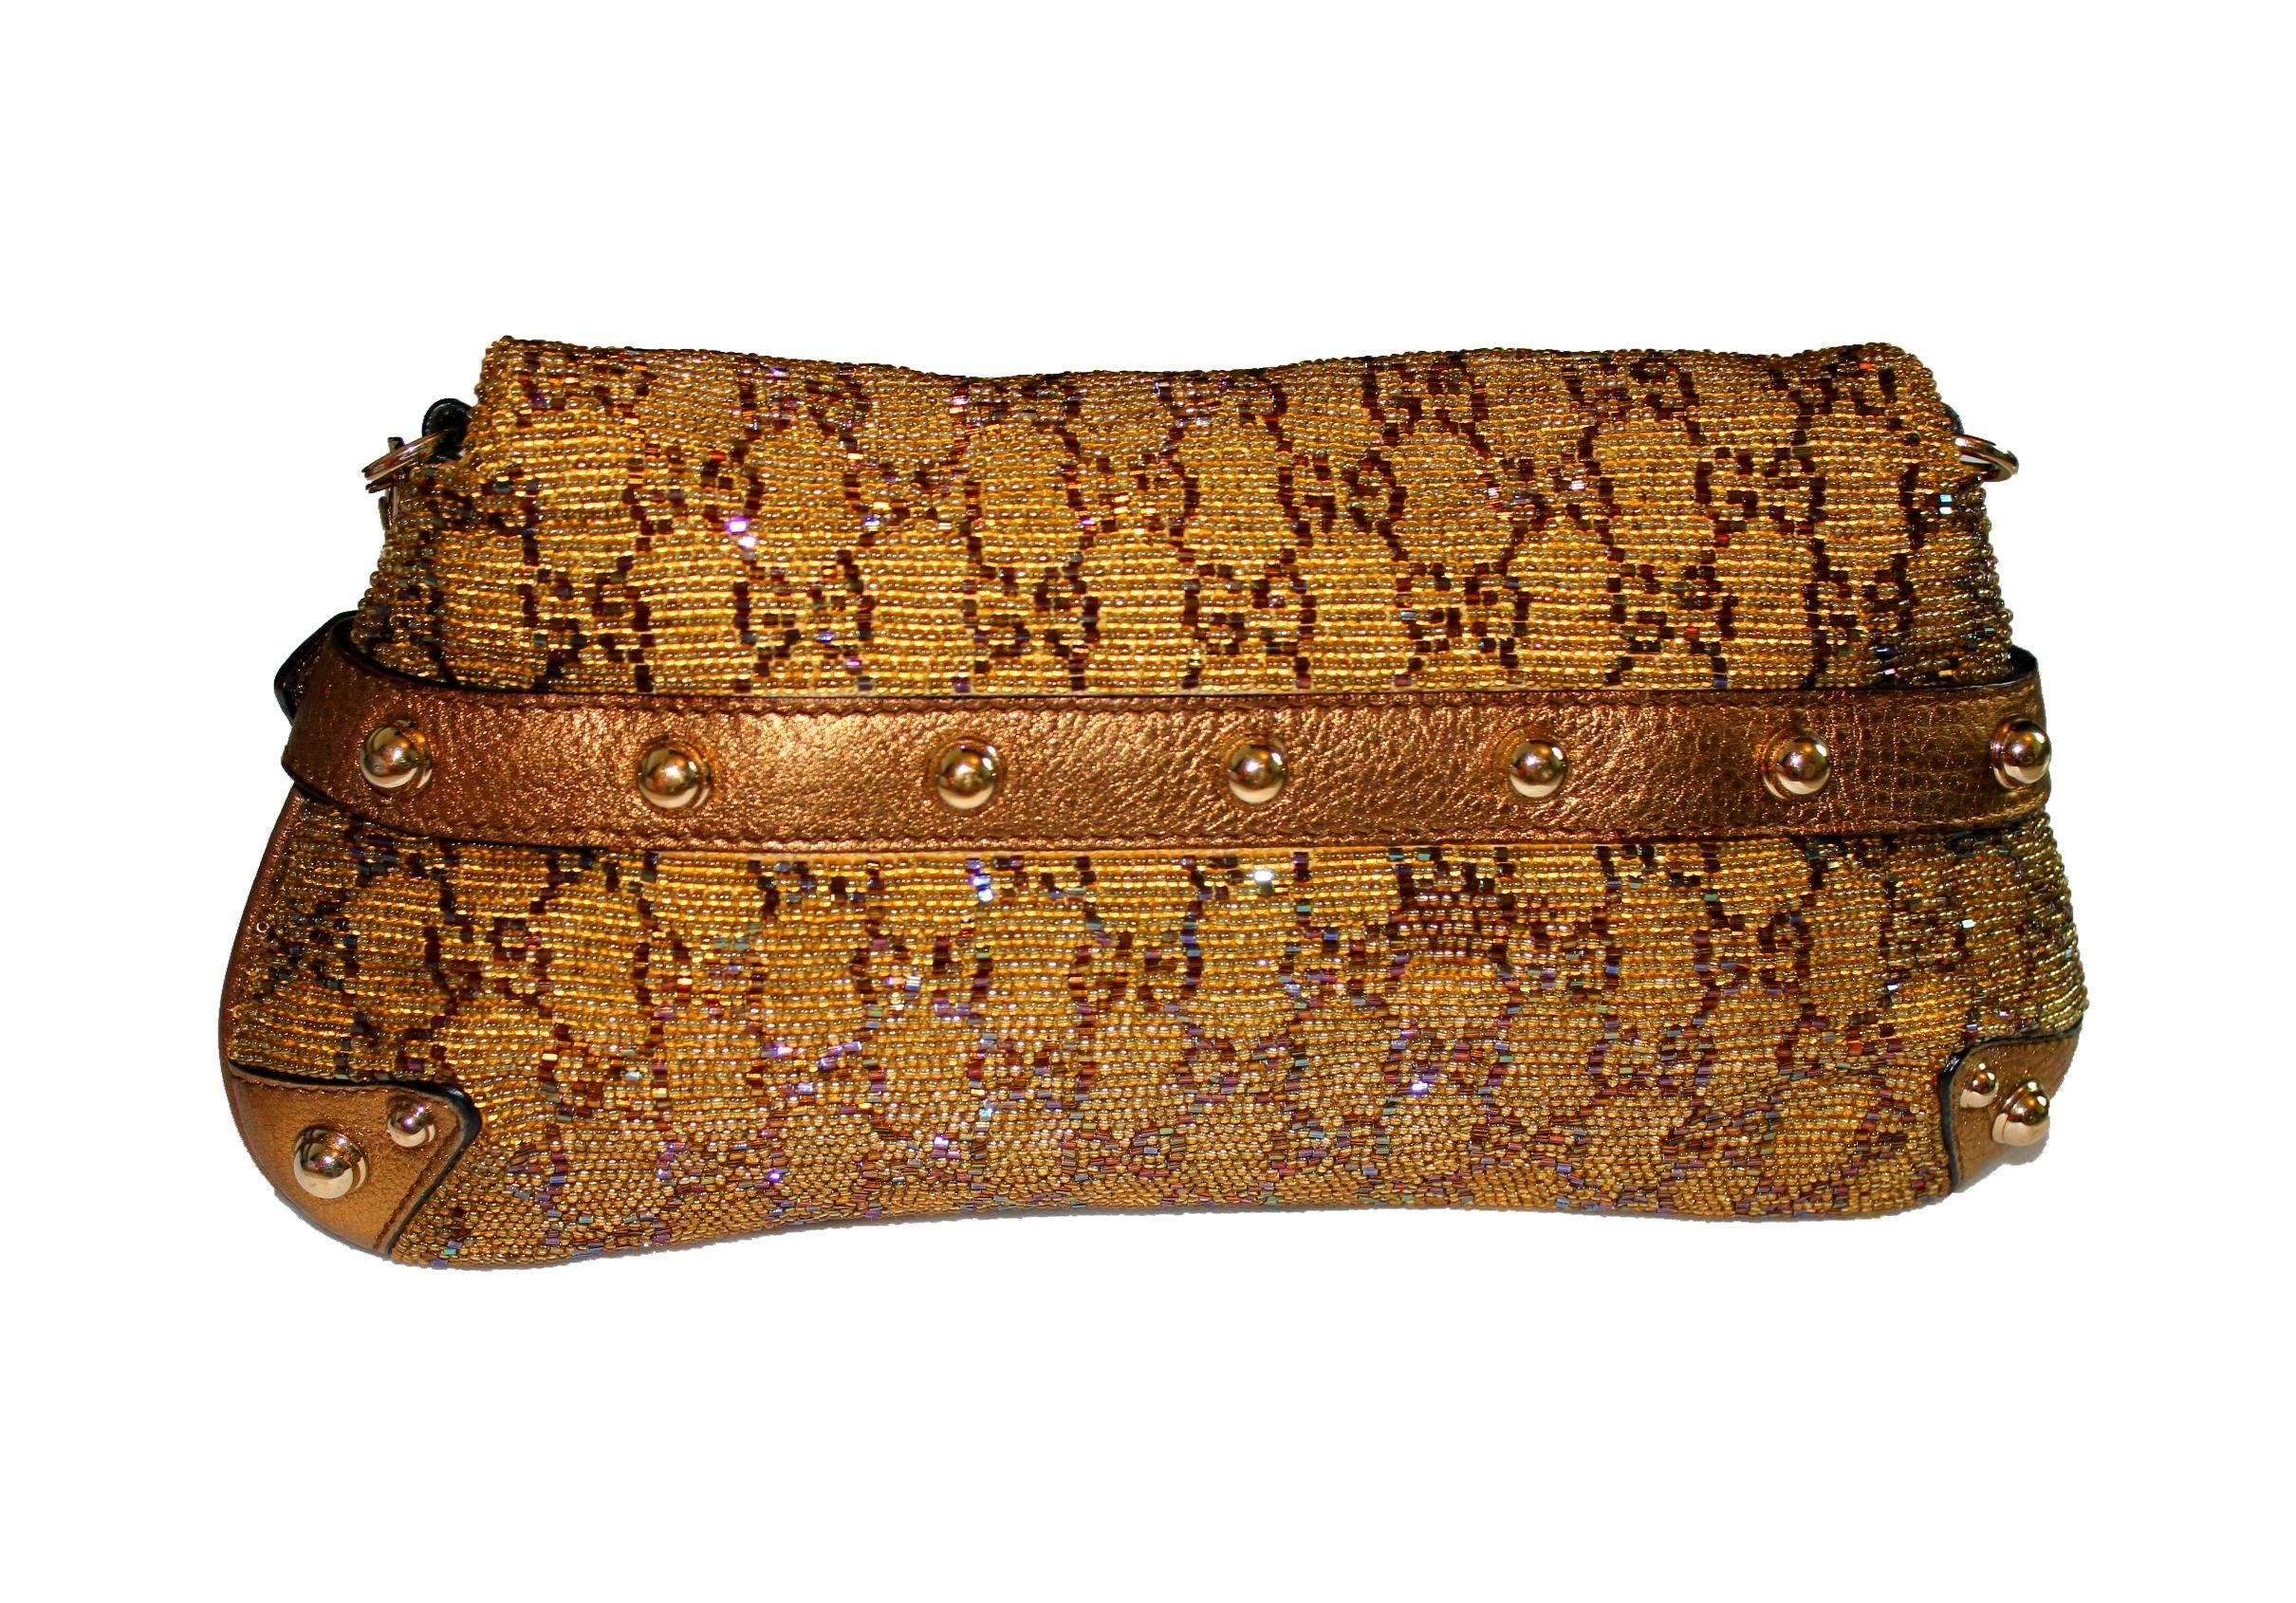 cd86768111d Gorgeous Golden Metallic Gucci GG Monogram Beaded Crystal Horsebit Bag  Clutch For Sale at 1stdibs